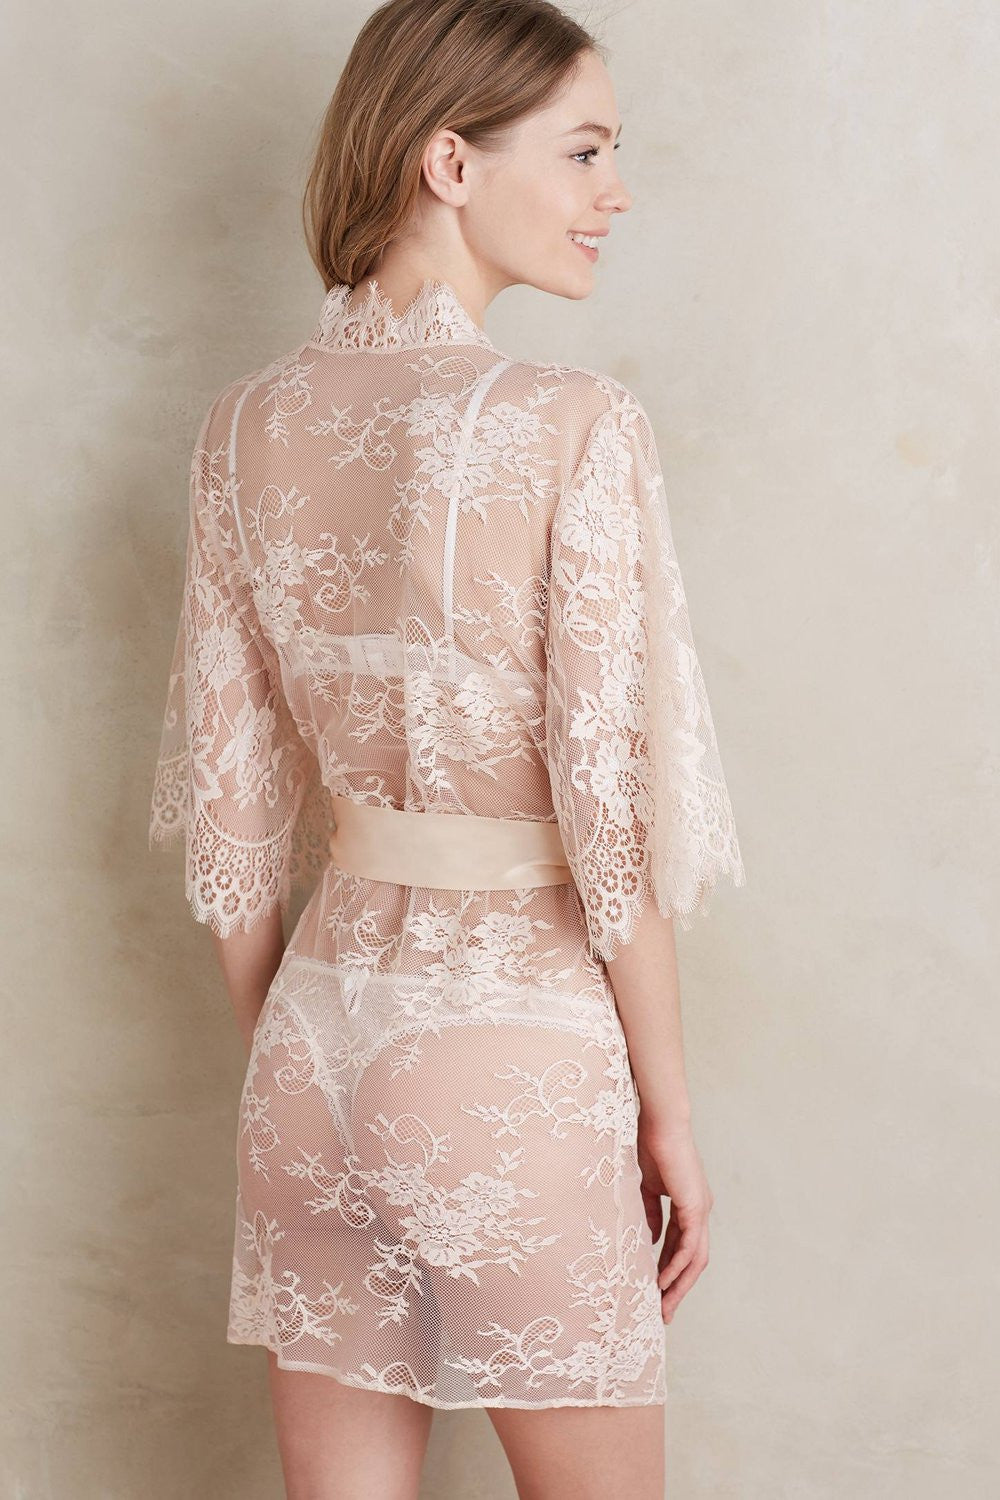 SWAN QUEEN LACE KIMONO BRIDAL ROBE IN BLUSH - STYLE 102